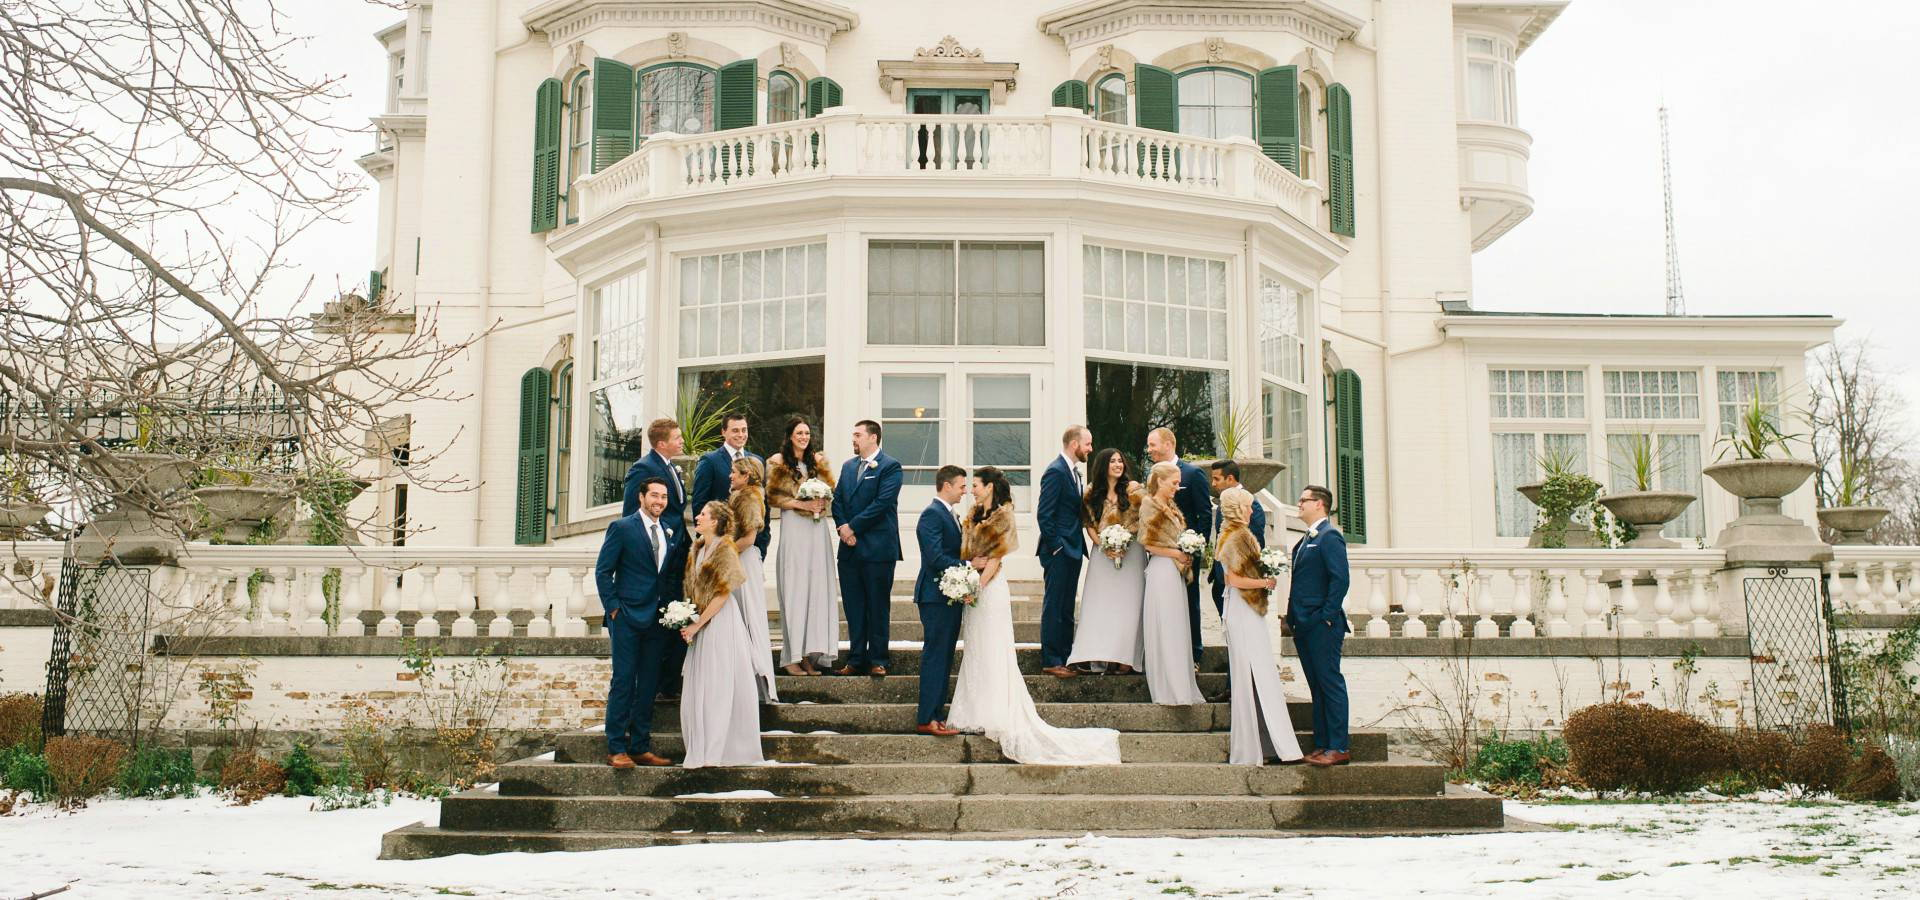 Hero image for Andrea and Laird's Lovely Winter Wedding at Storys Building